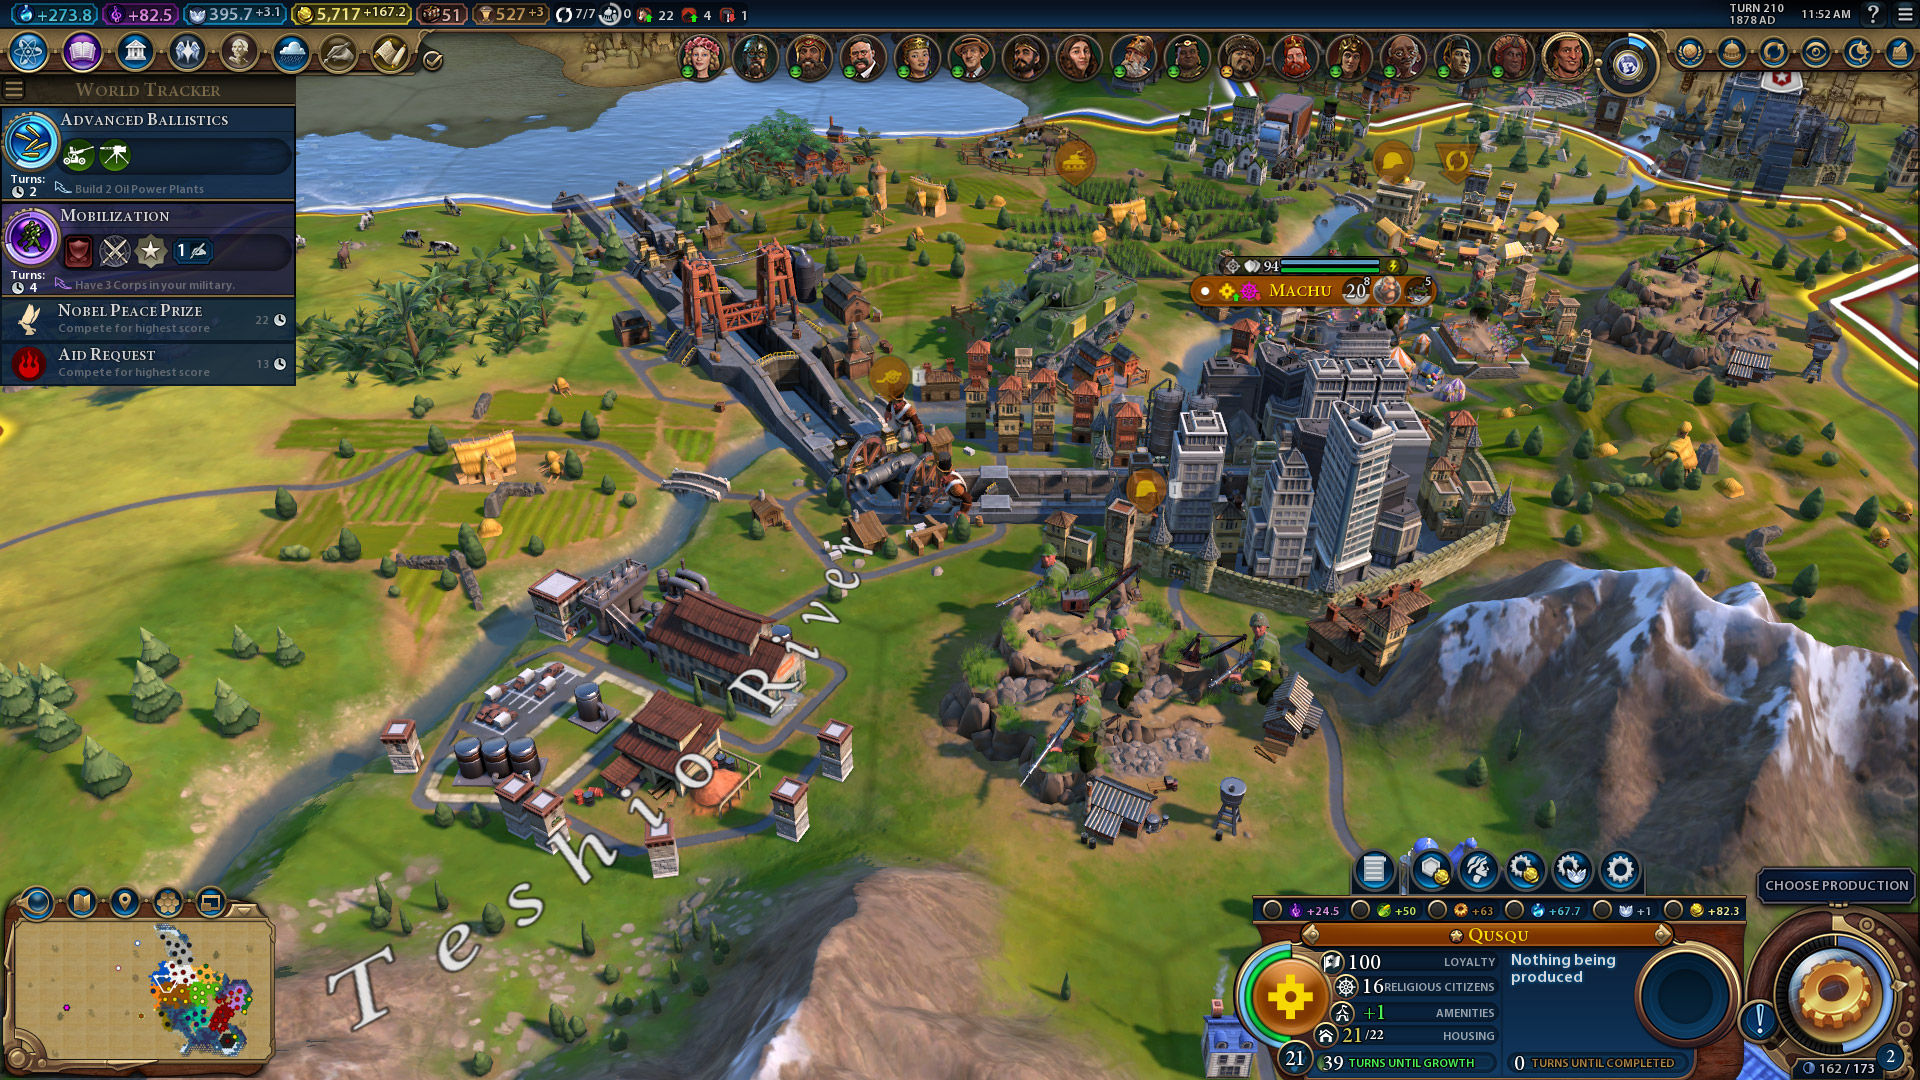 Photo of Civilization 6 Power Guide: Consumable Resources, Global Warming